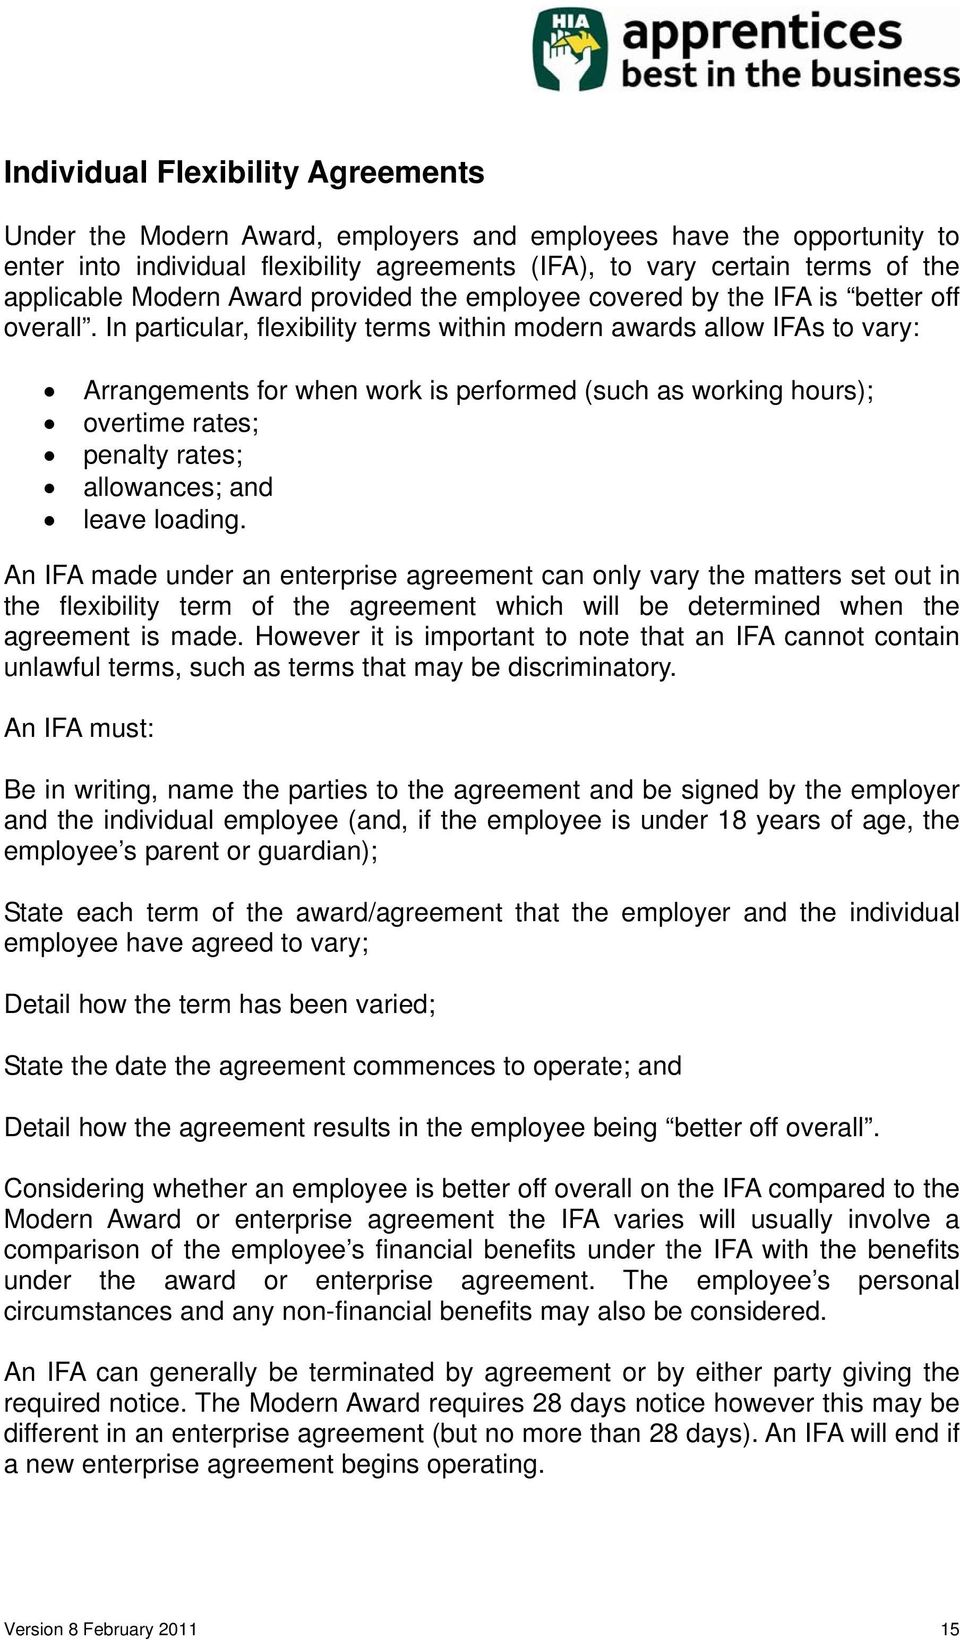 In particular, flexibility terms within modern awards allow IFAs to vary: Arrangements for when work is performed (such as working hours); overtime rates; penalty rates; allowances; and leave loading.